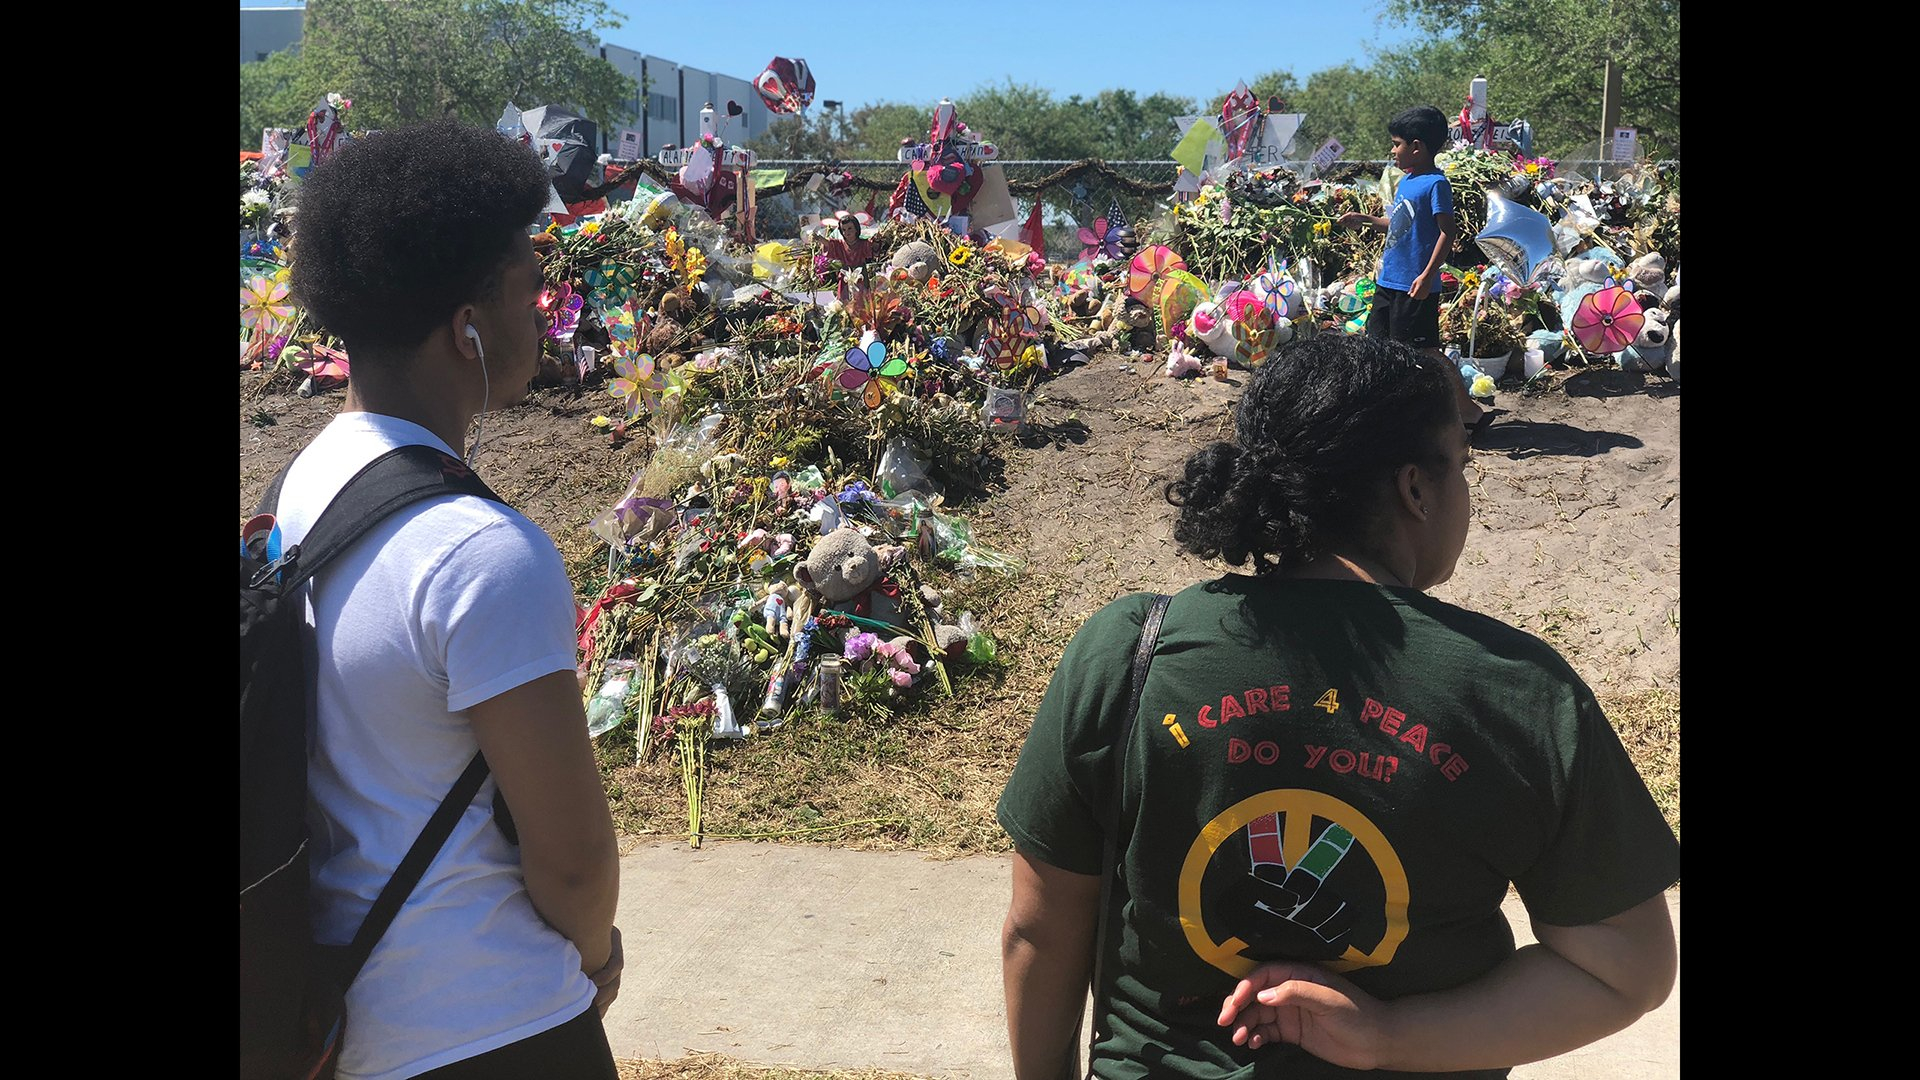 Chicago teens Vashon Edmondson, left, and Trinity Cole-Reid look on at a Marjory Stoneman Douglas High School shooting memorial in Parkland, Florida on March 3. (Photo courtesy Lamar Johnson)